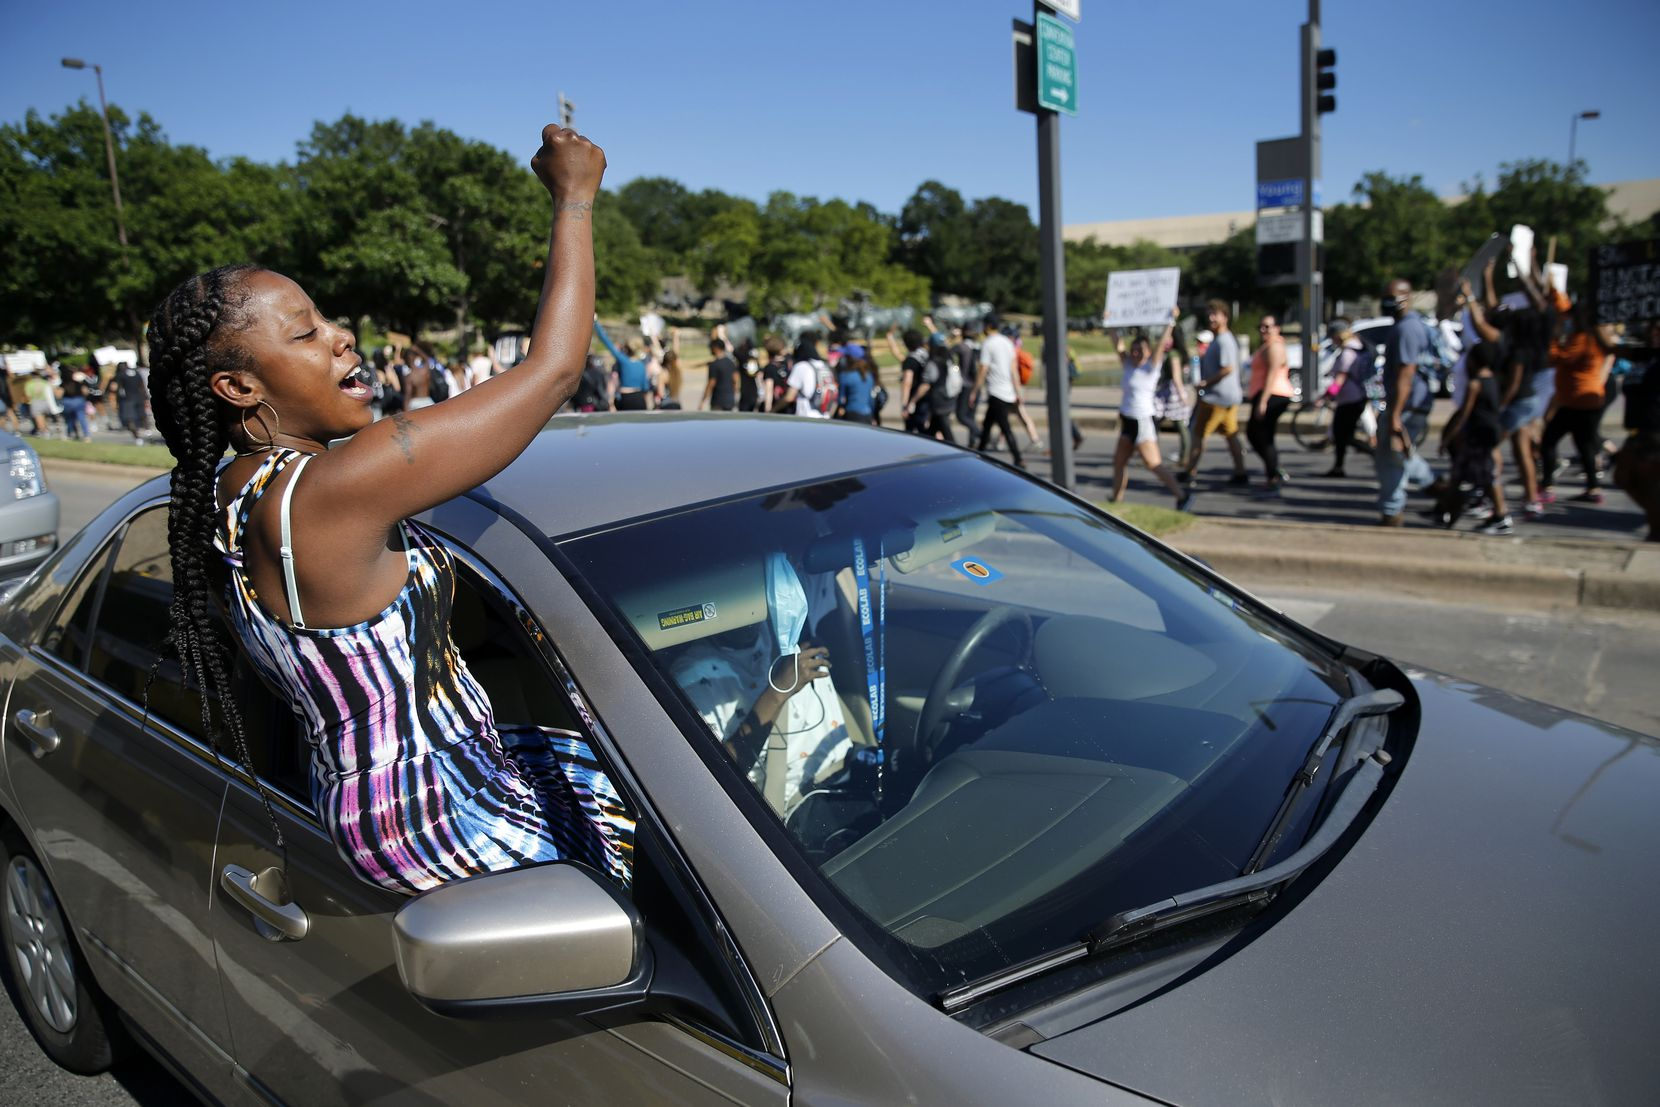 Angel Brown of Dallas crawls out of her car window to support protesters marching in Dallas on Wednesday.